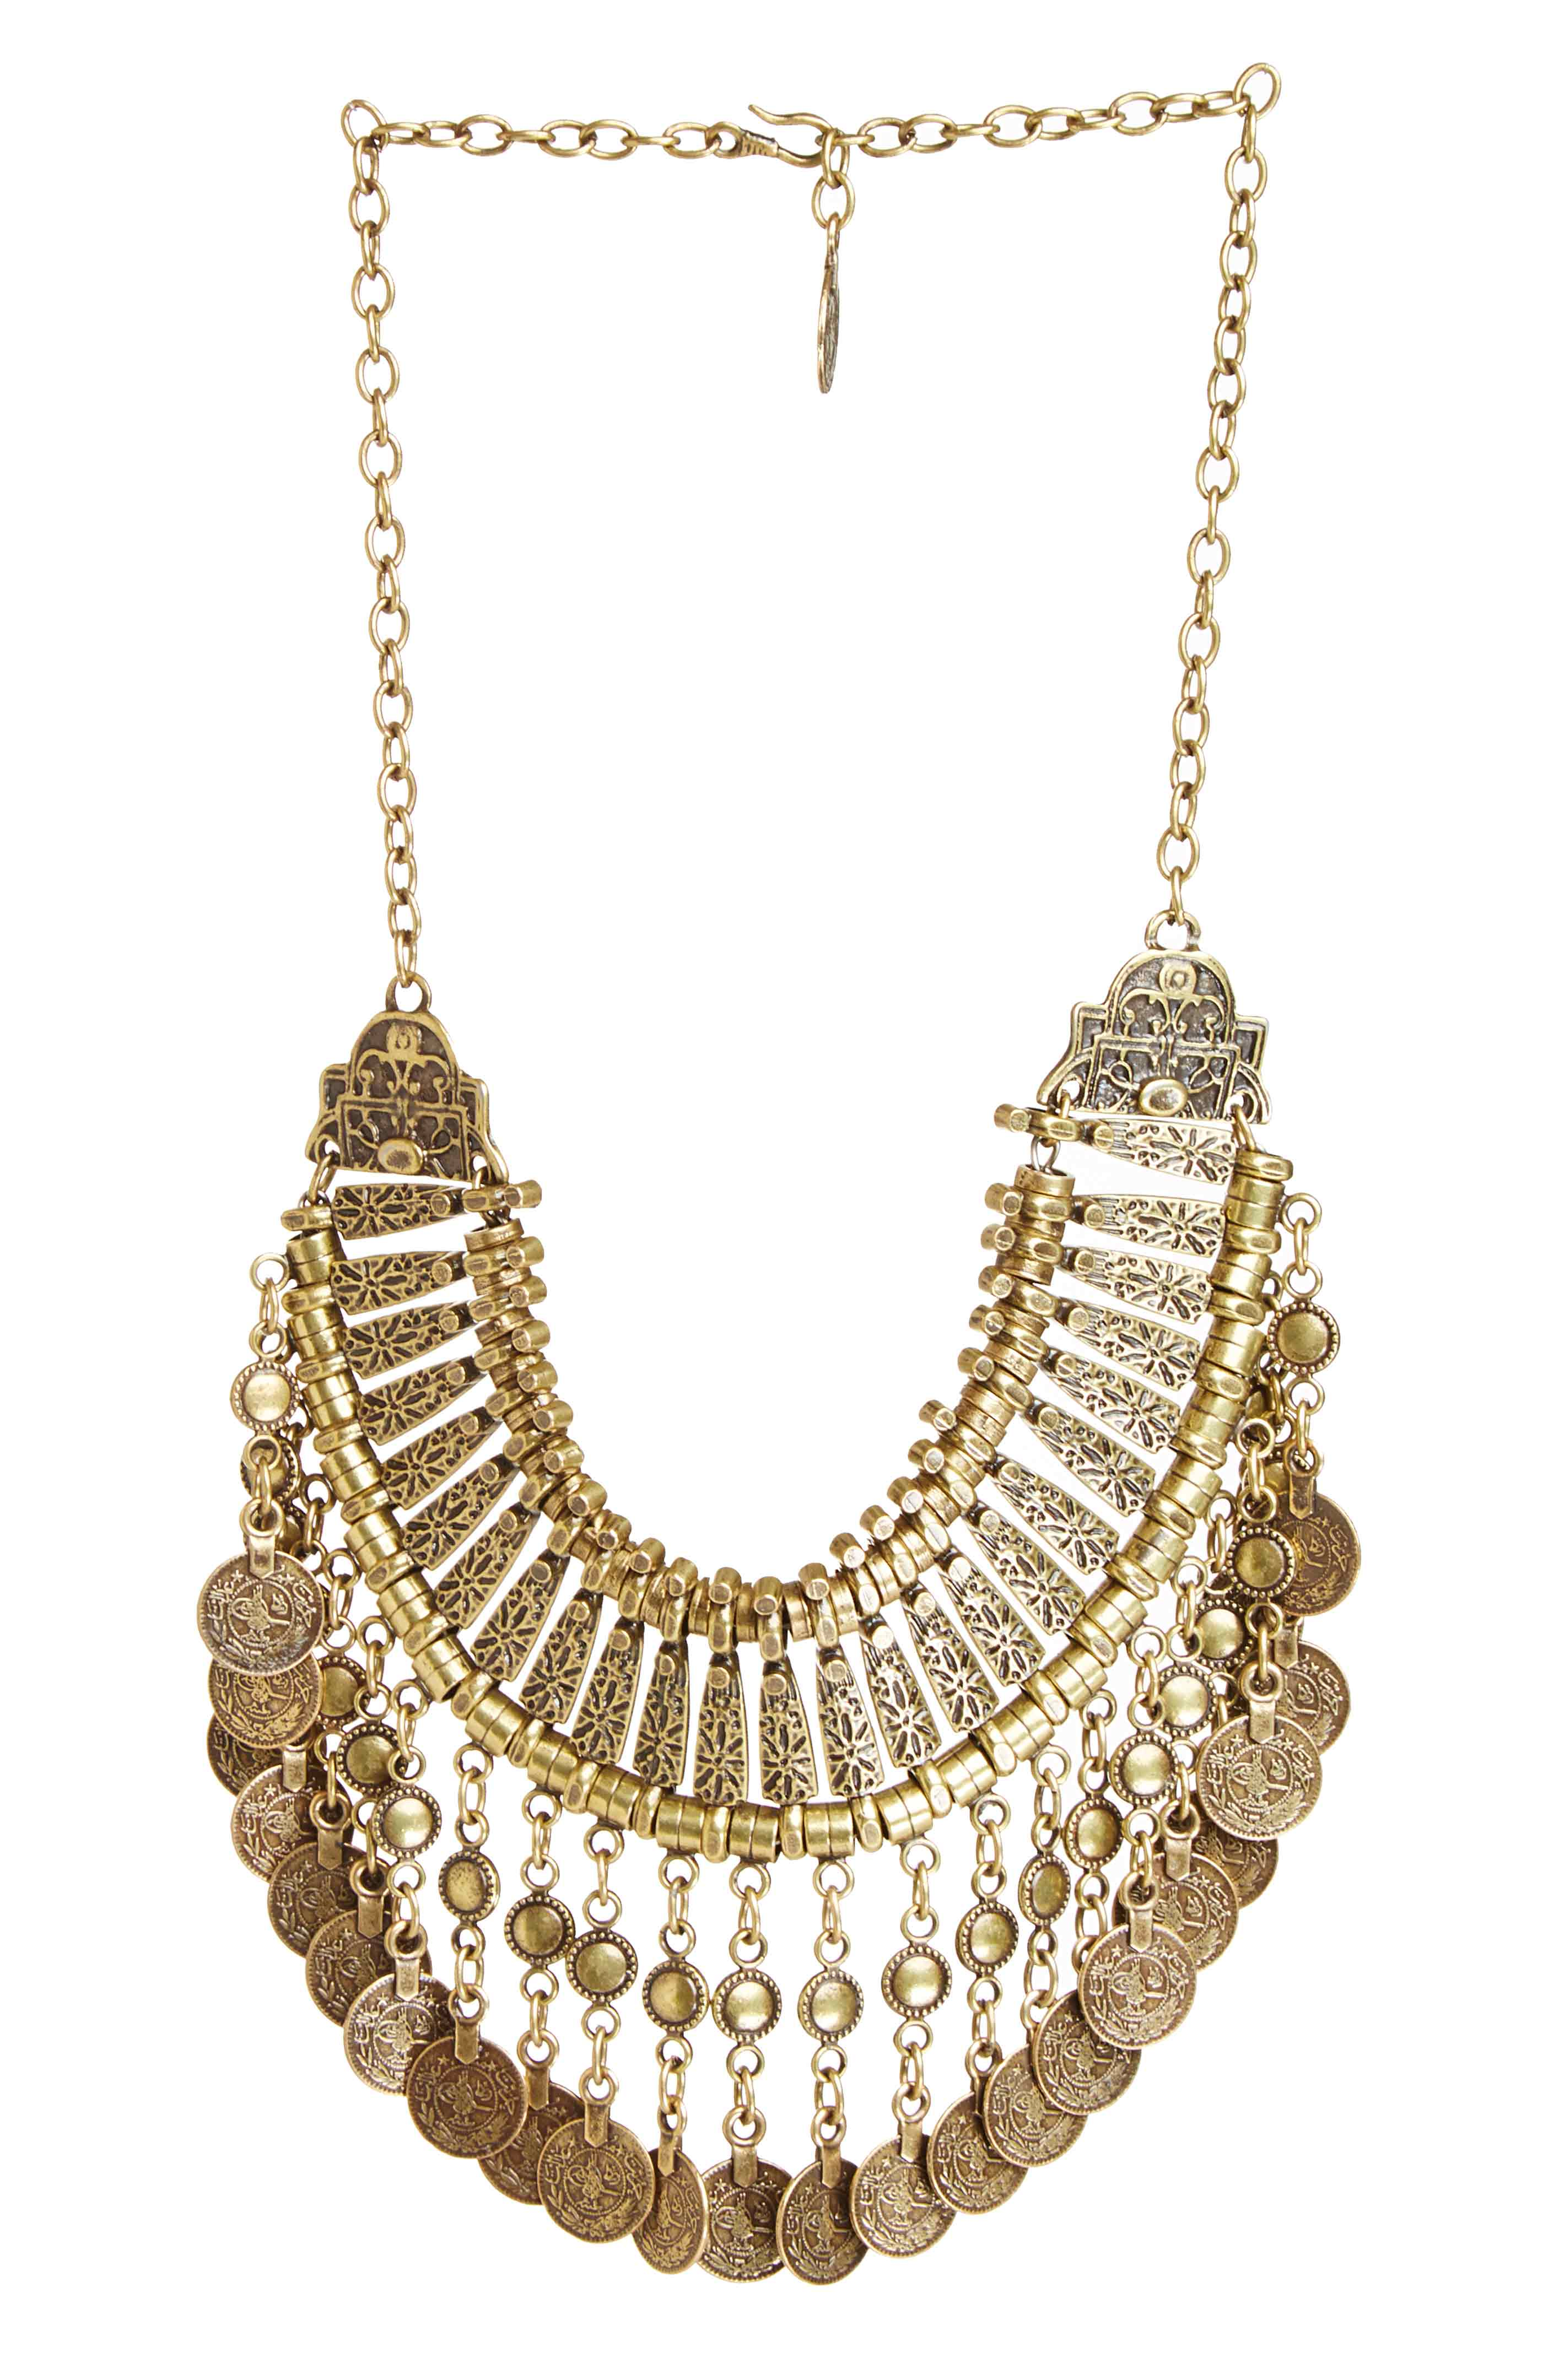 Natalie B Fit For a Queen Necklace in Gold